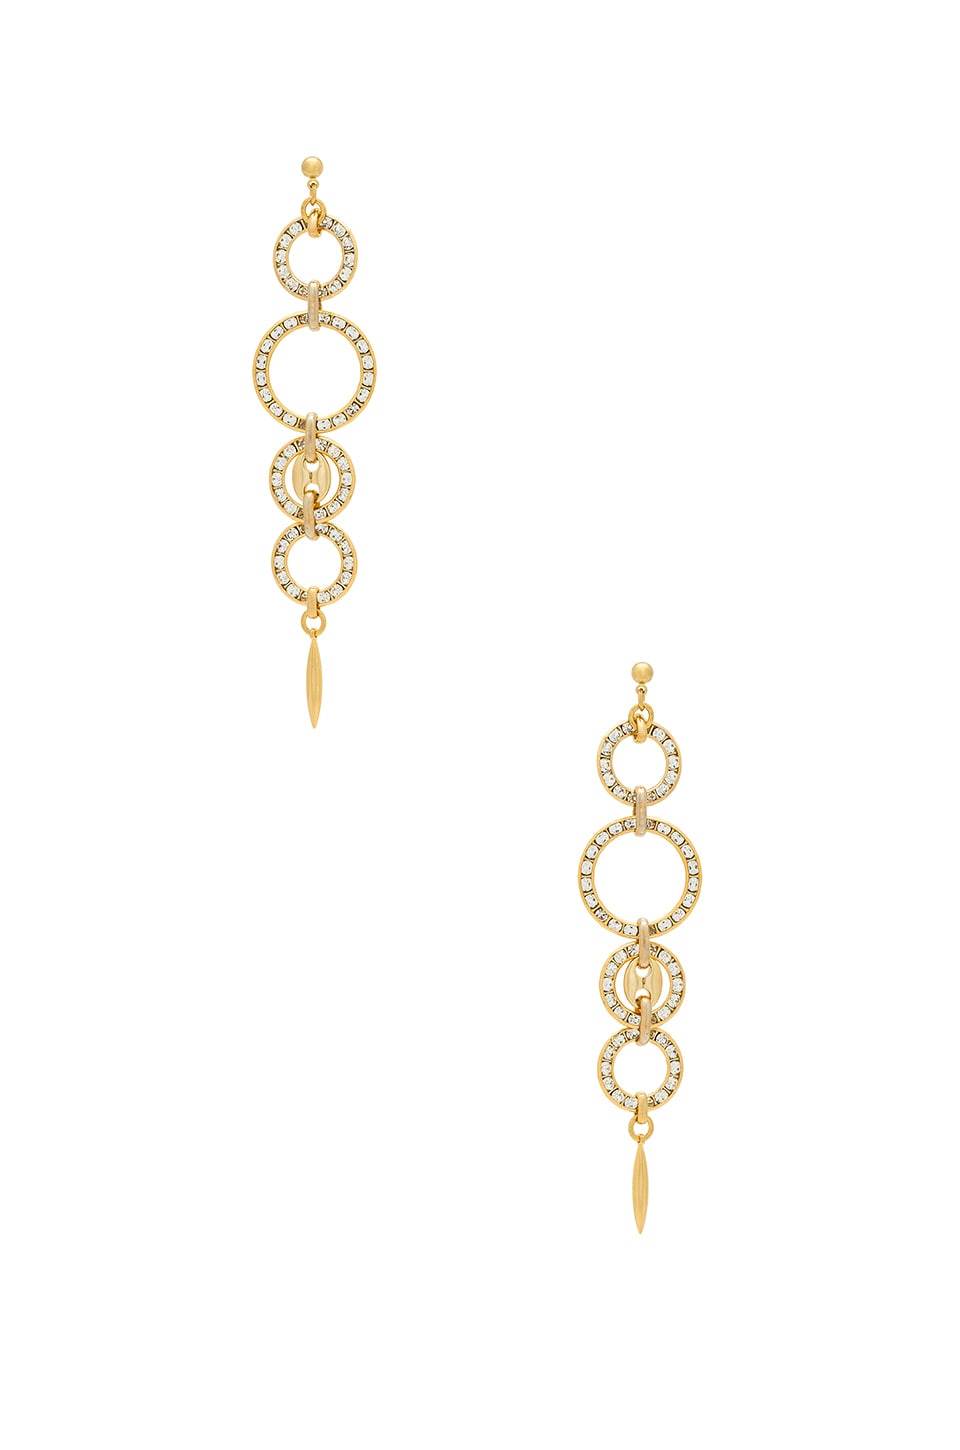 Haus Of Topper Linked Circle Earring in Gold